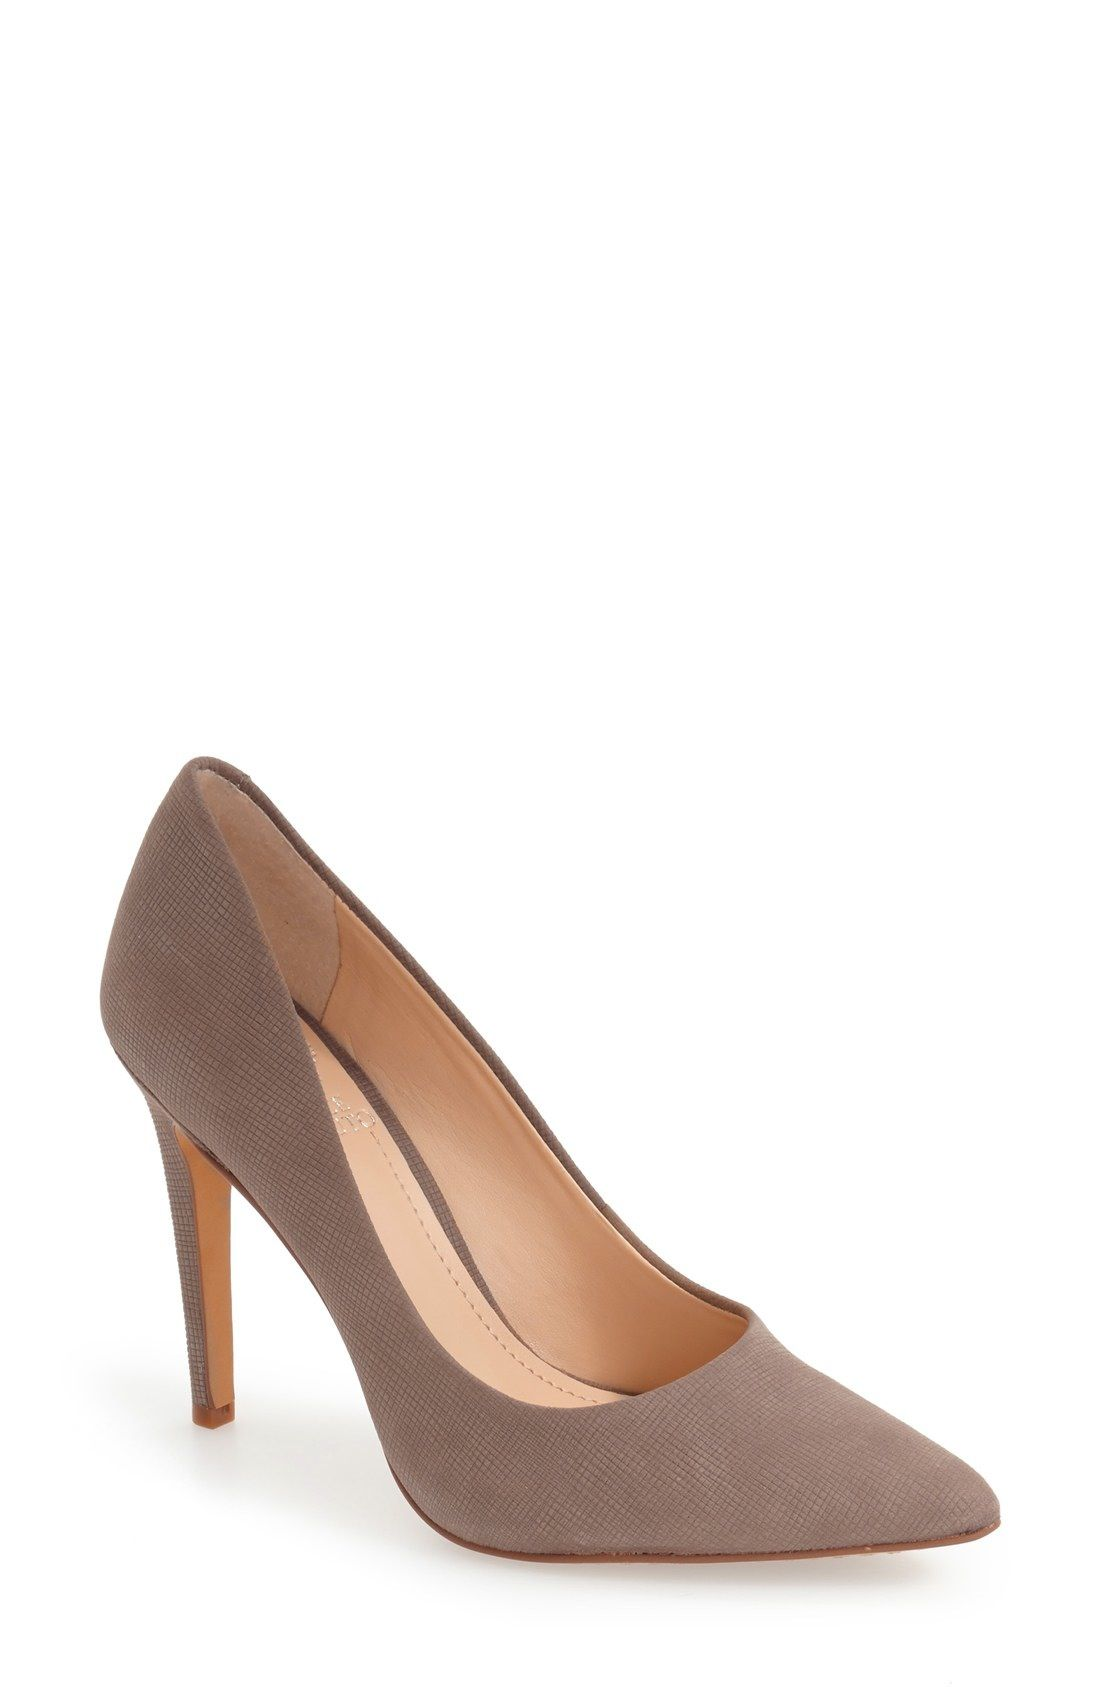 Vince Camuto Wedding Shoes | Vince Camuto Kain Pump Available At Nordstrom Wedding